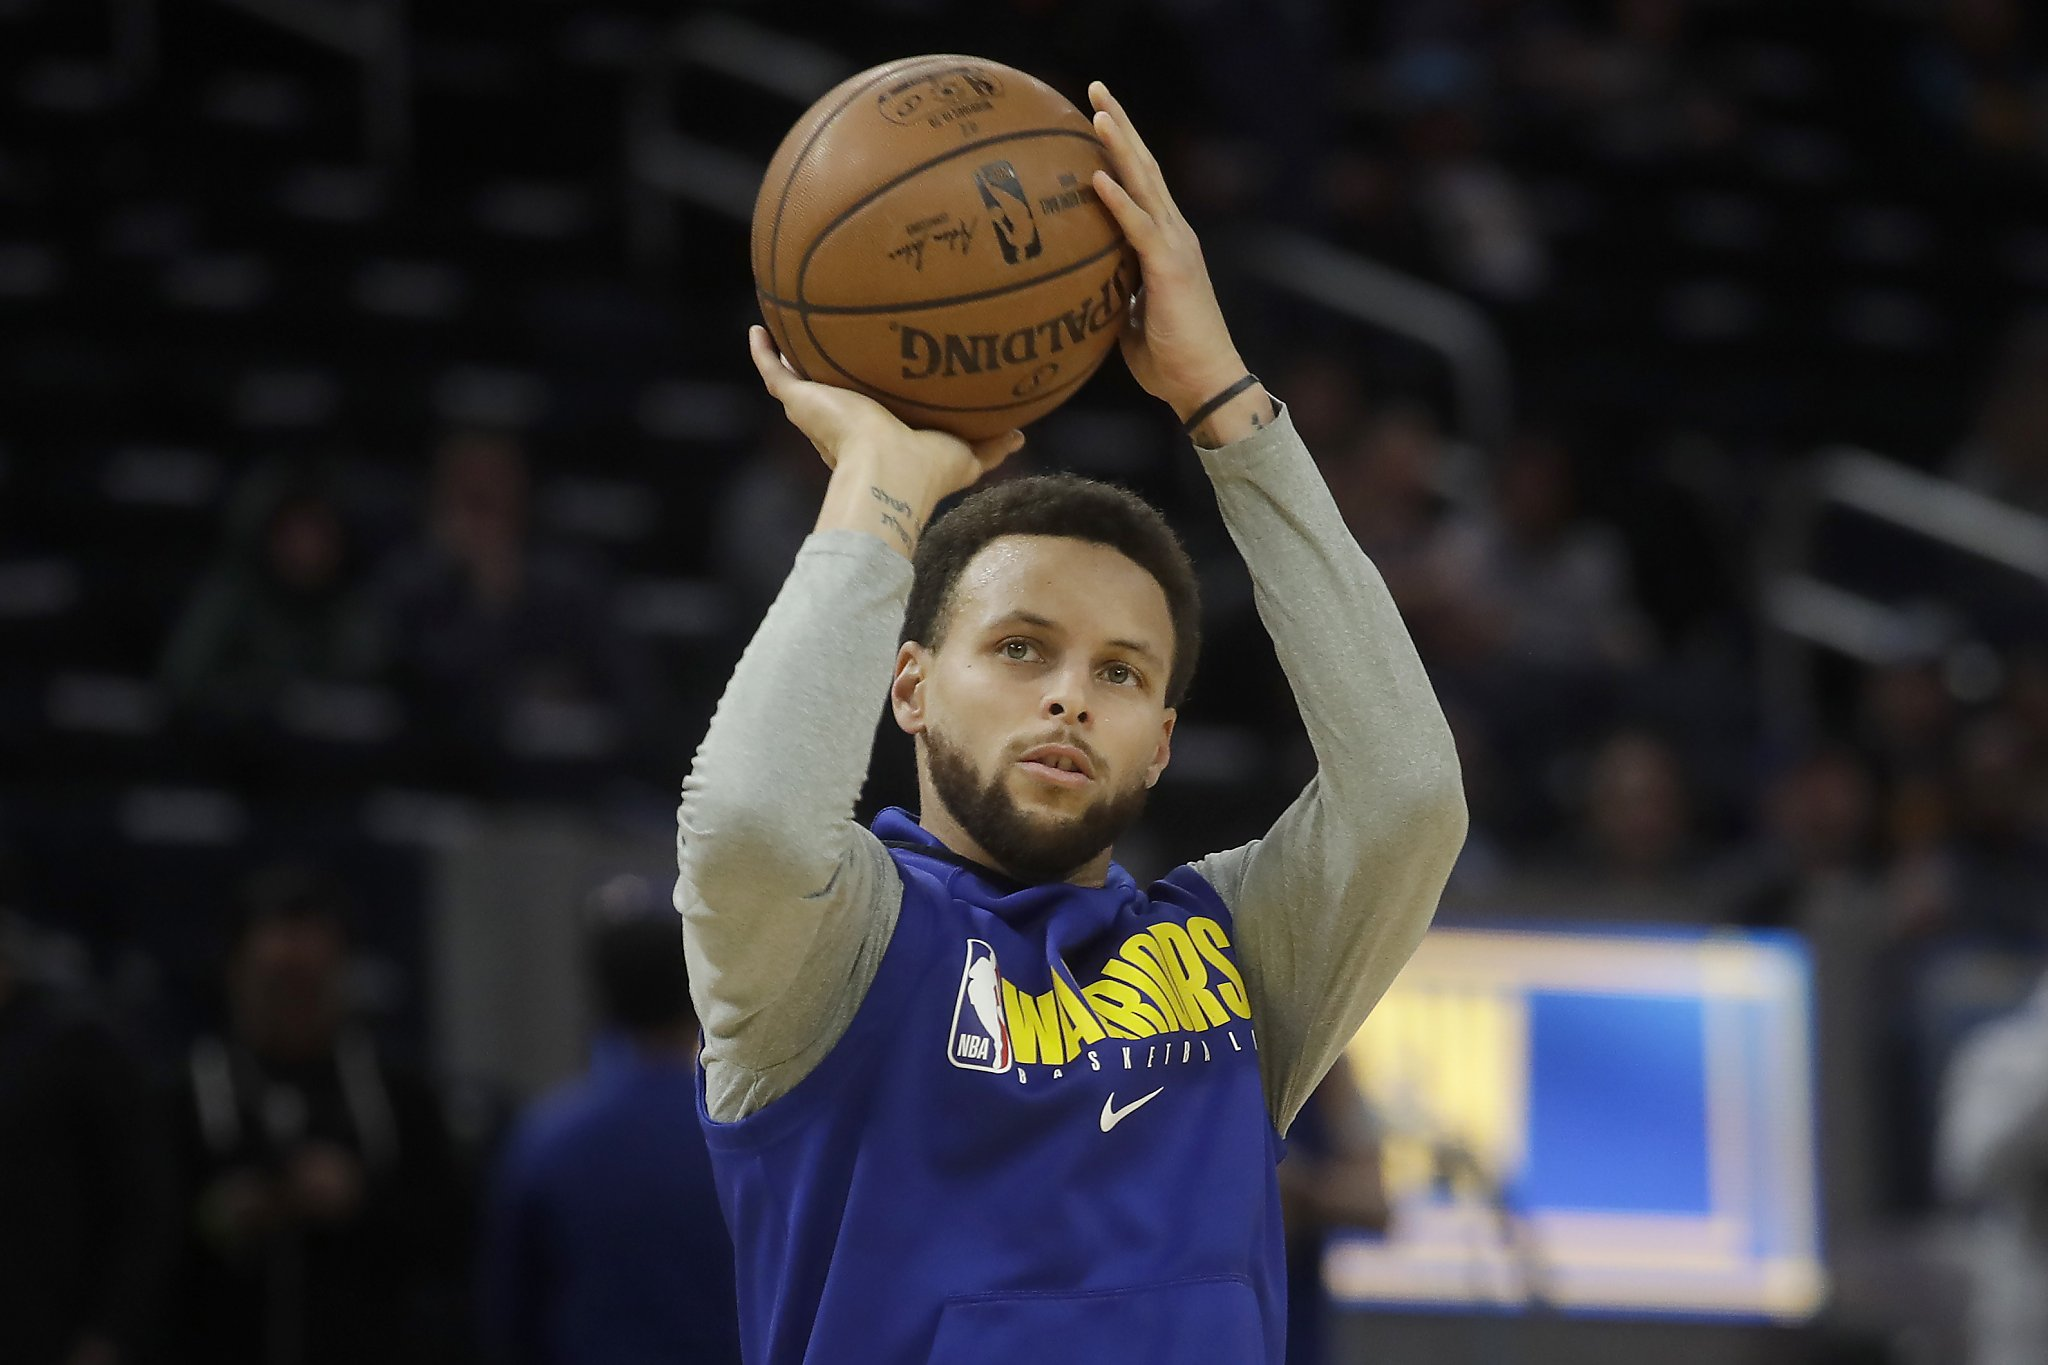 Stephen Curry participates in every part of practice - other than scrimmage